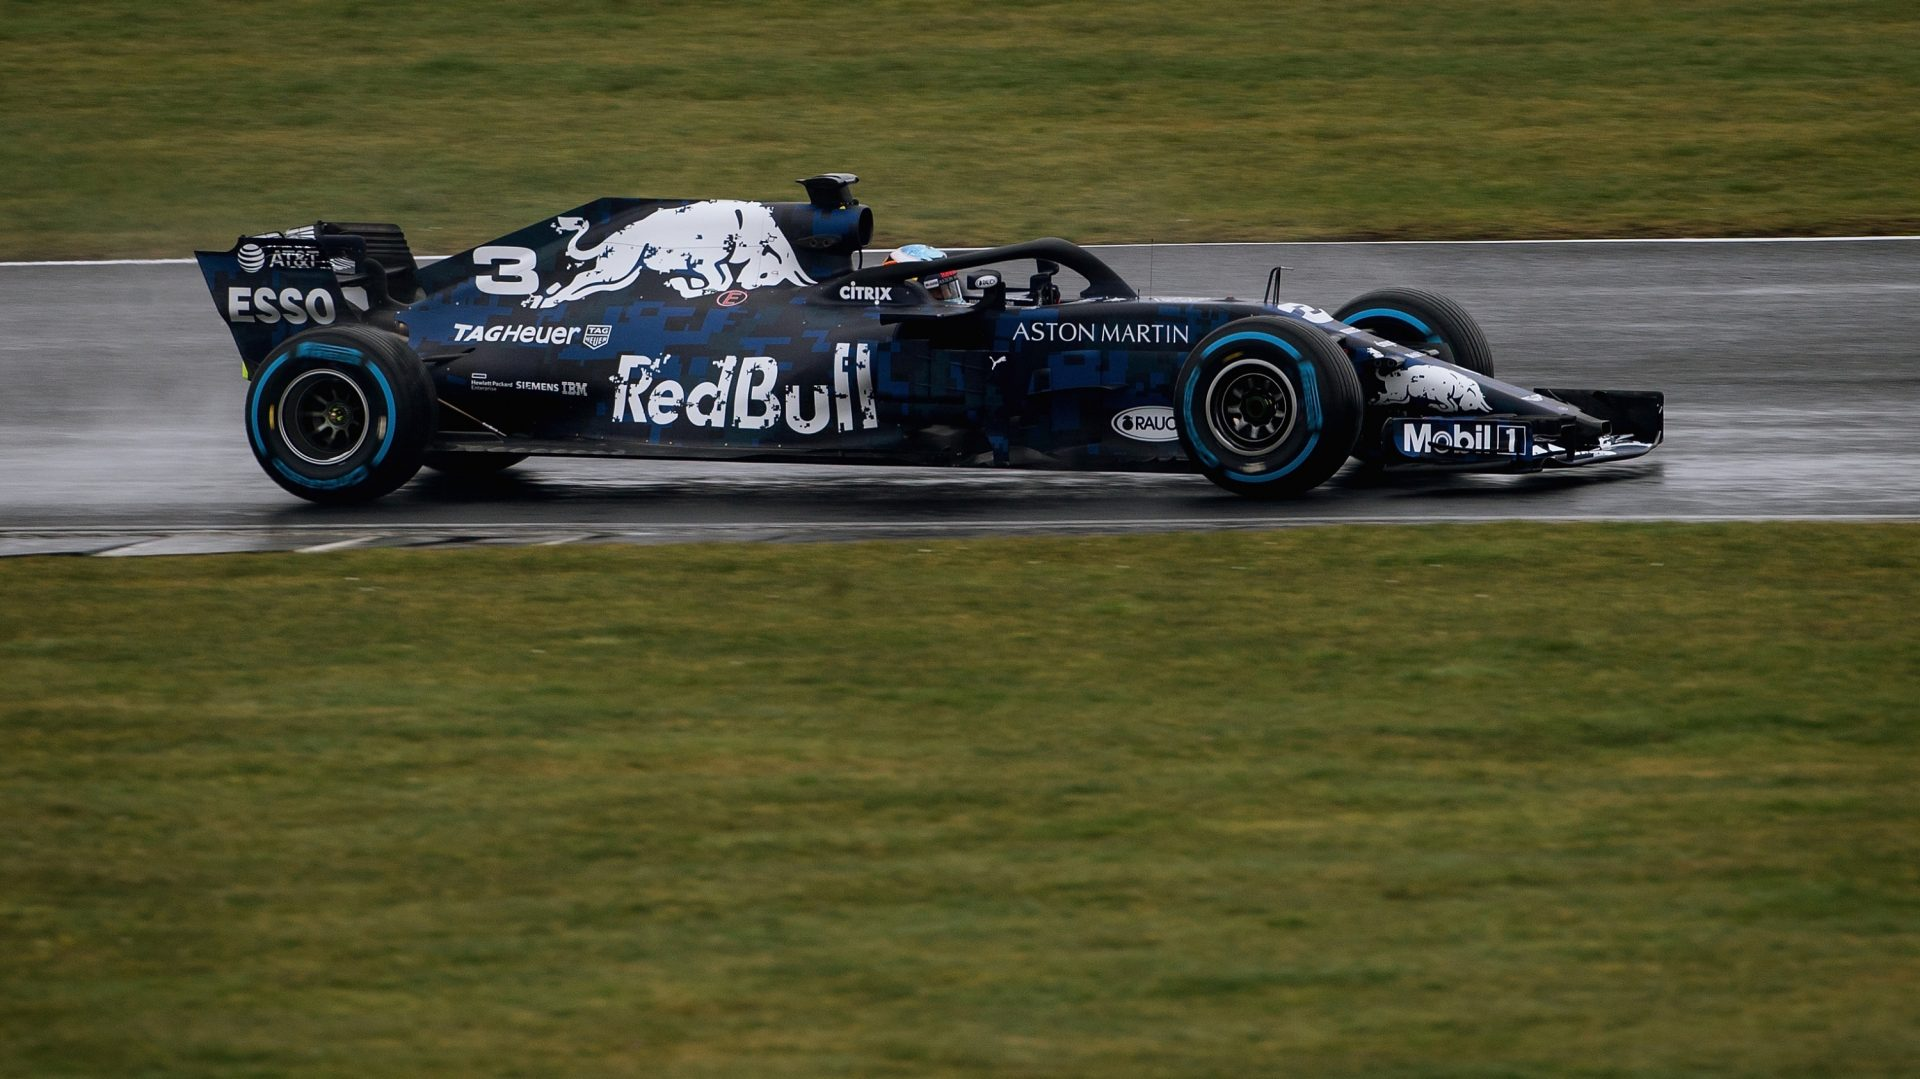 https://www.formula1.com/content/fom-website/en/latest/headlines/2018/2/ricciardo-shakes-down-rb14-at-silverstone/_jcr_content/articleContent/manual_gallery/image3.img.1920.medium.jpg/1519046404871.jpg